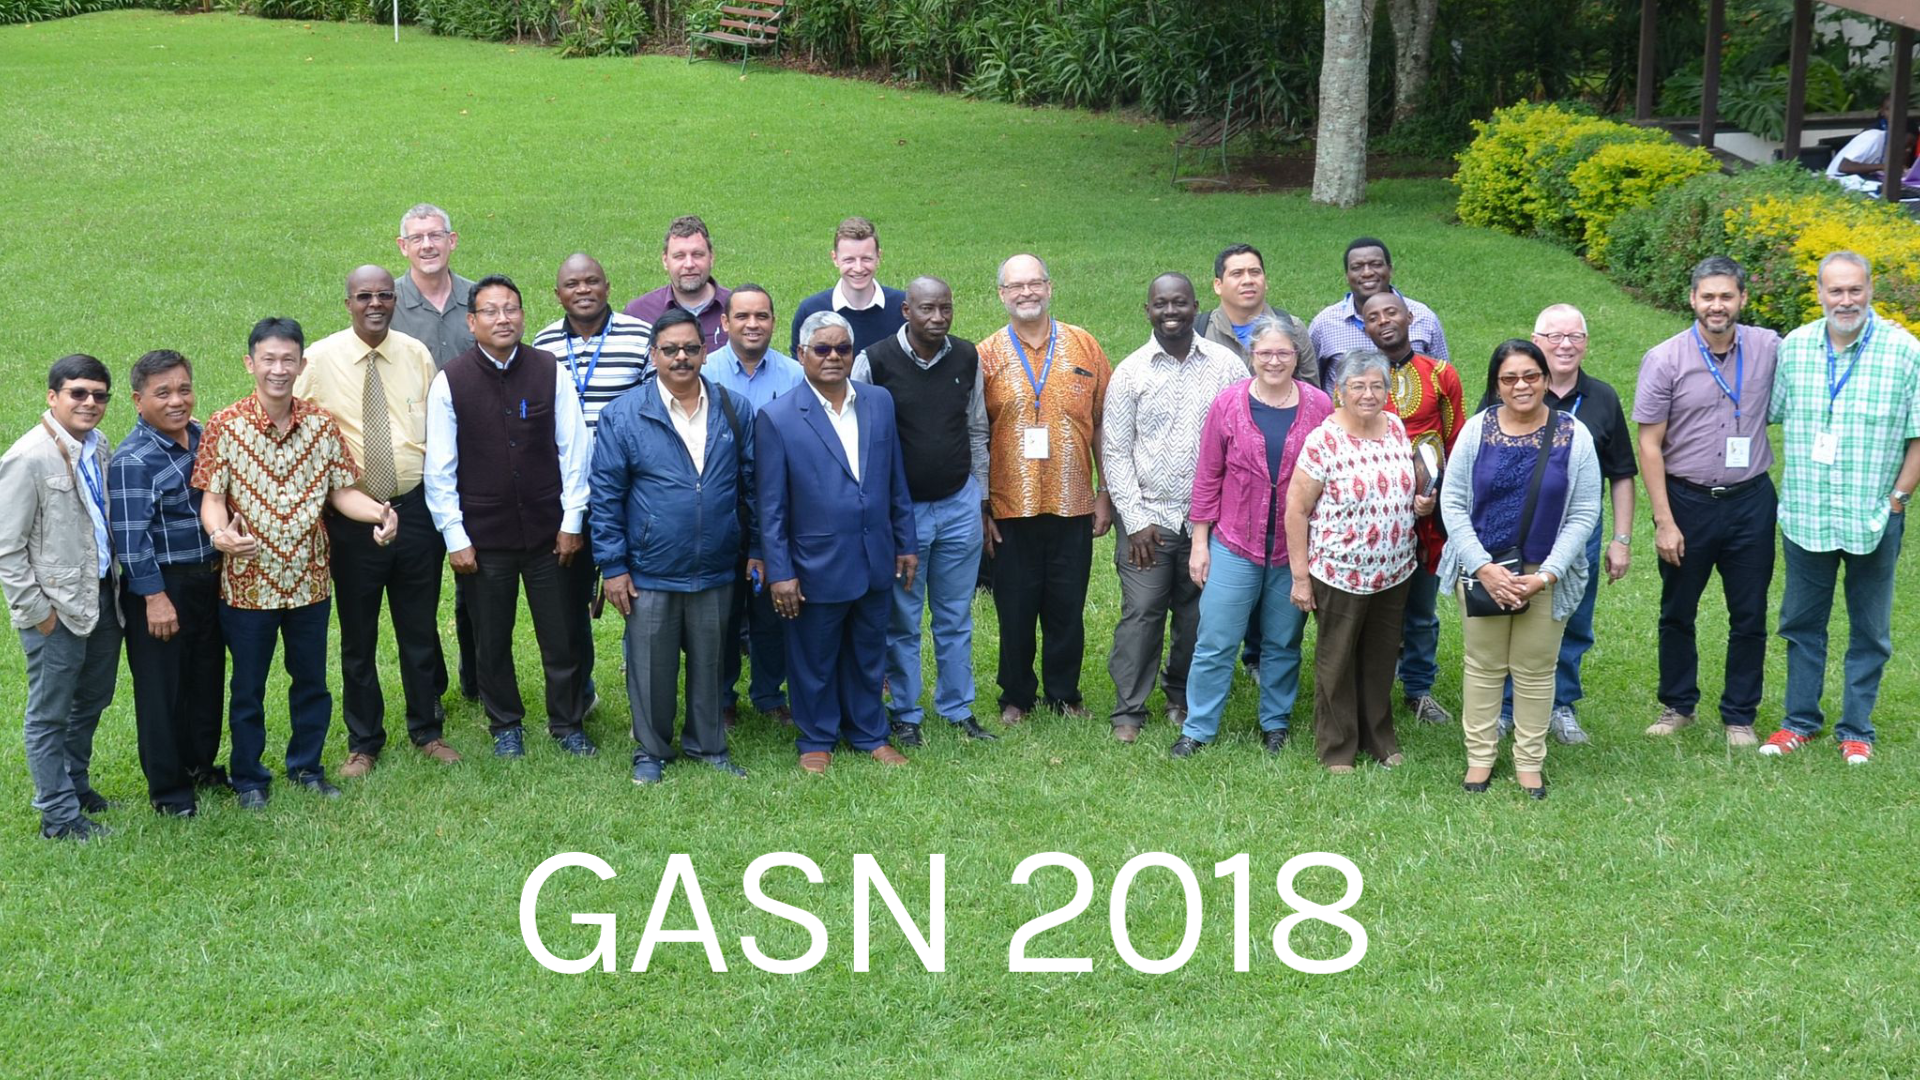 GASN group photo